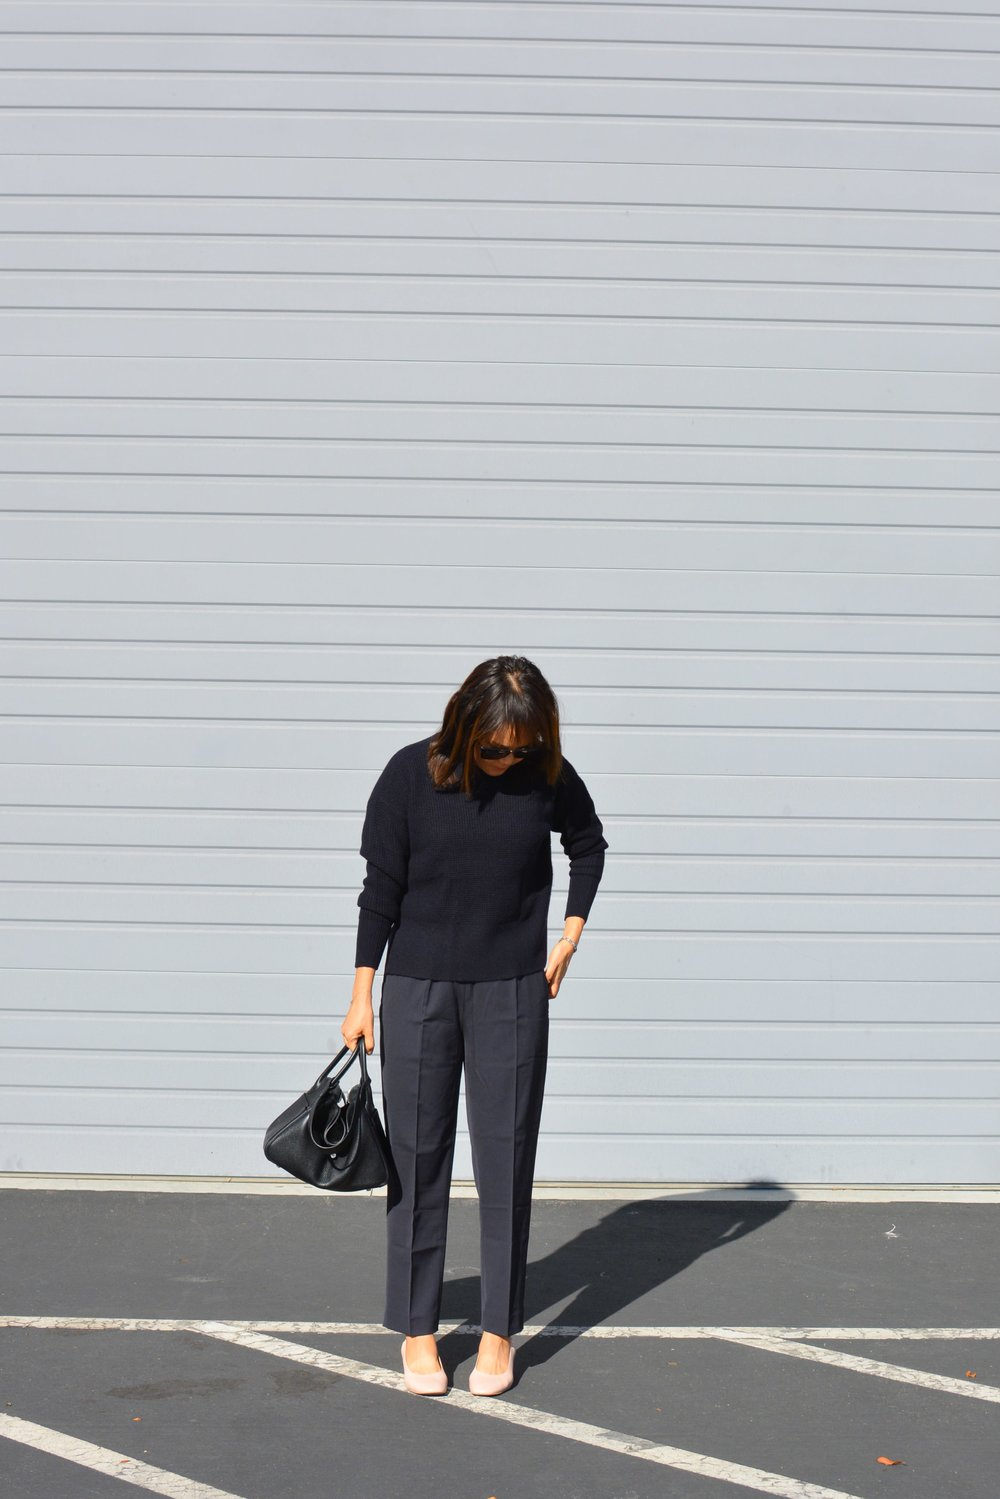 Everlane Review The Italian GoWeave Easy Pant (2 of 3)-min.jpg